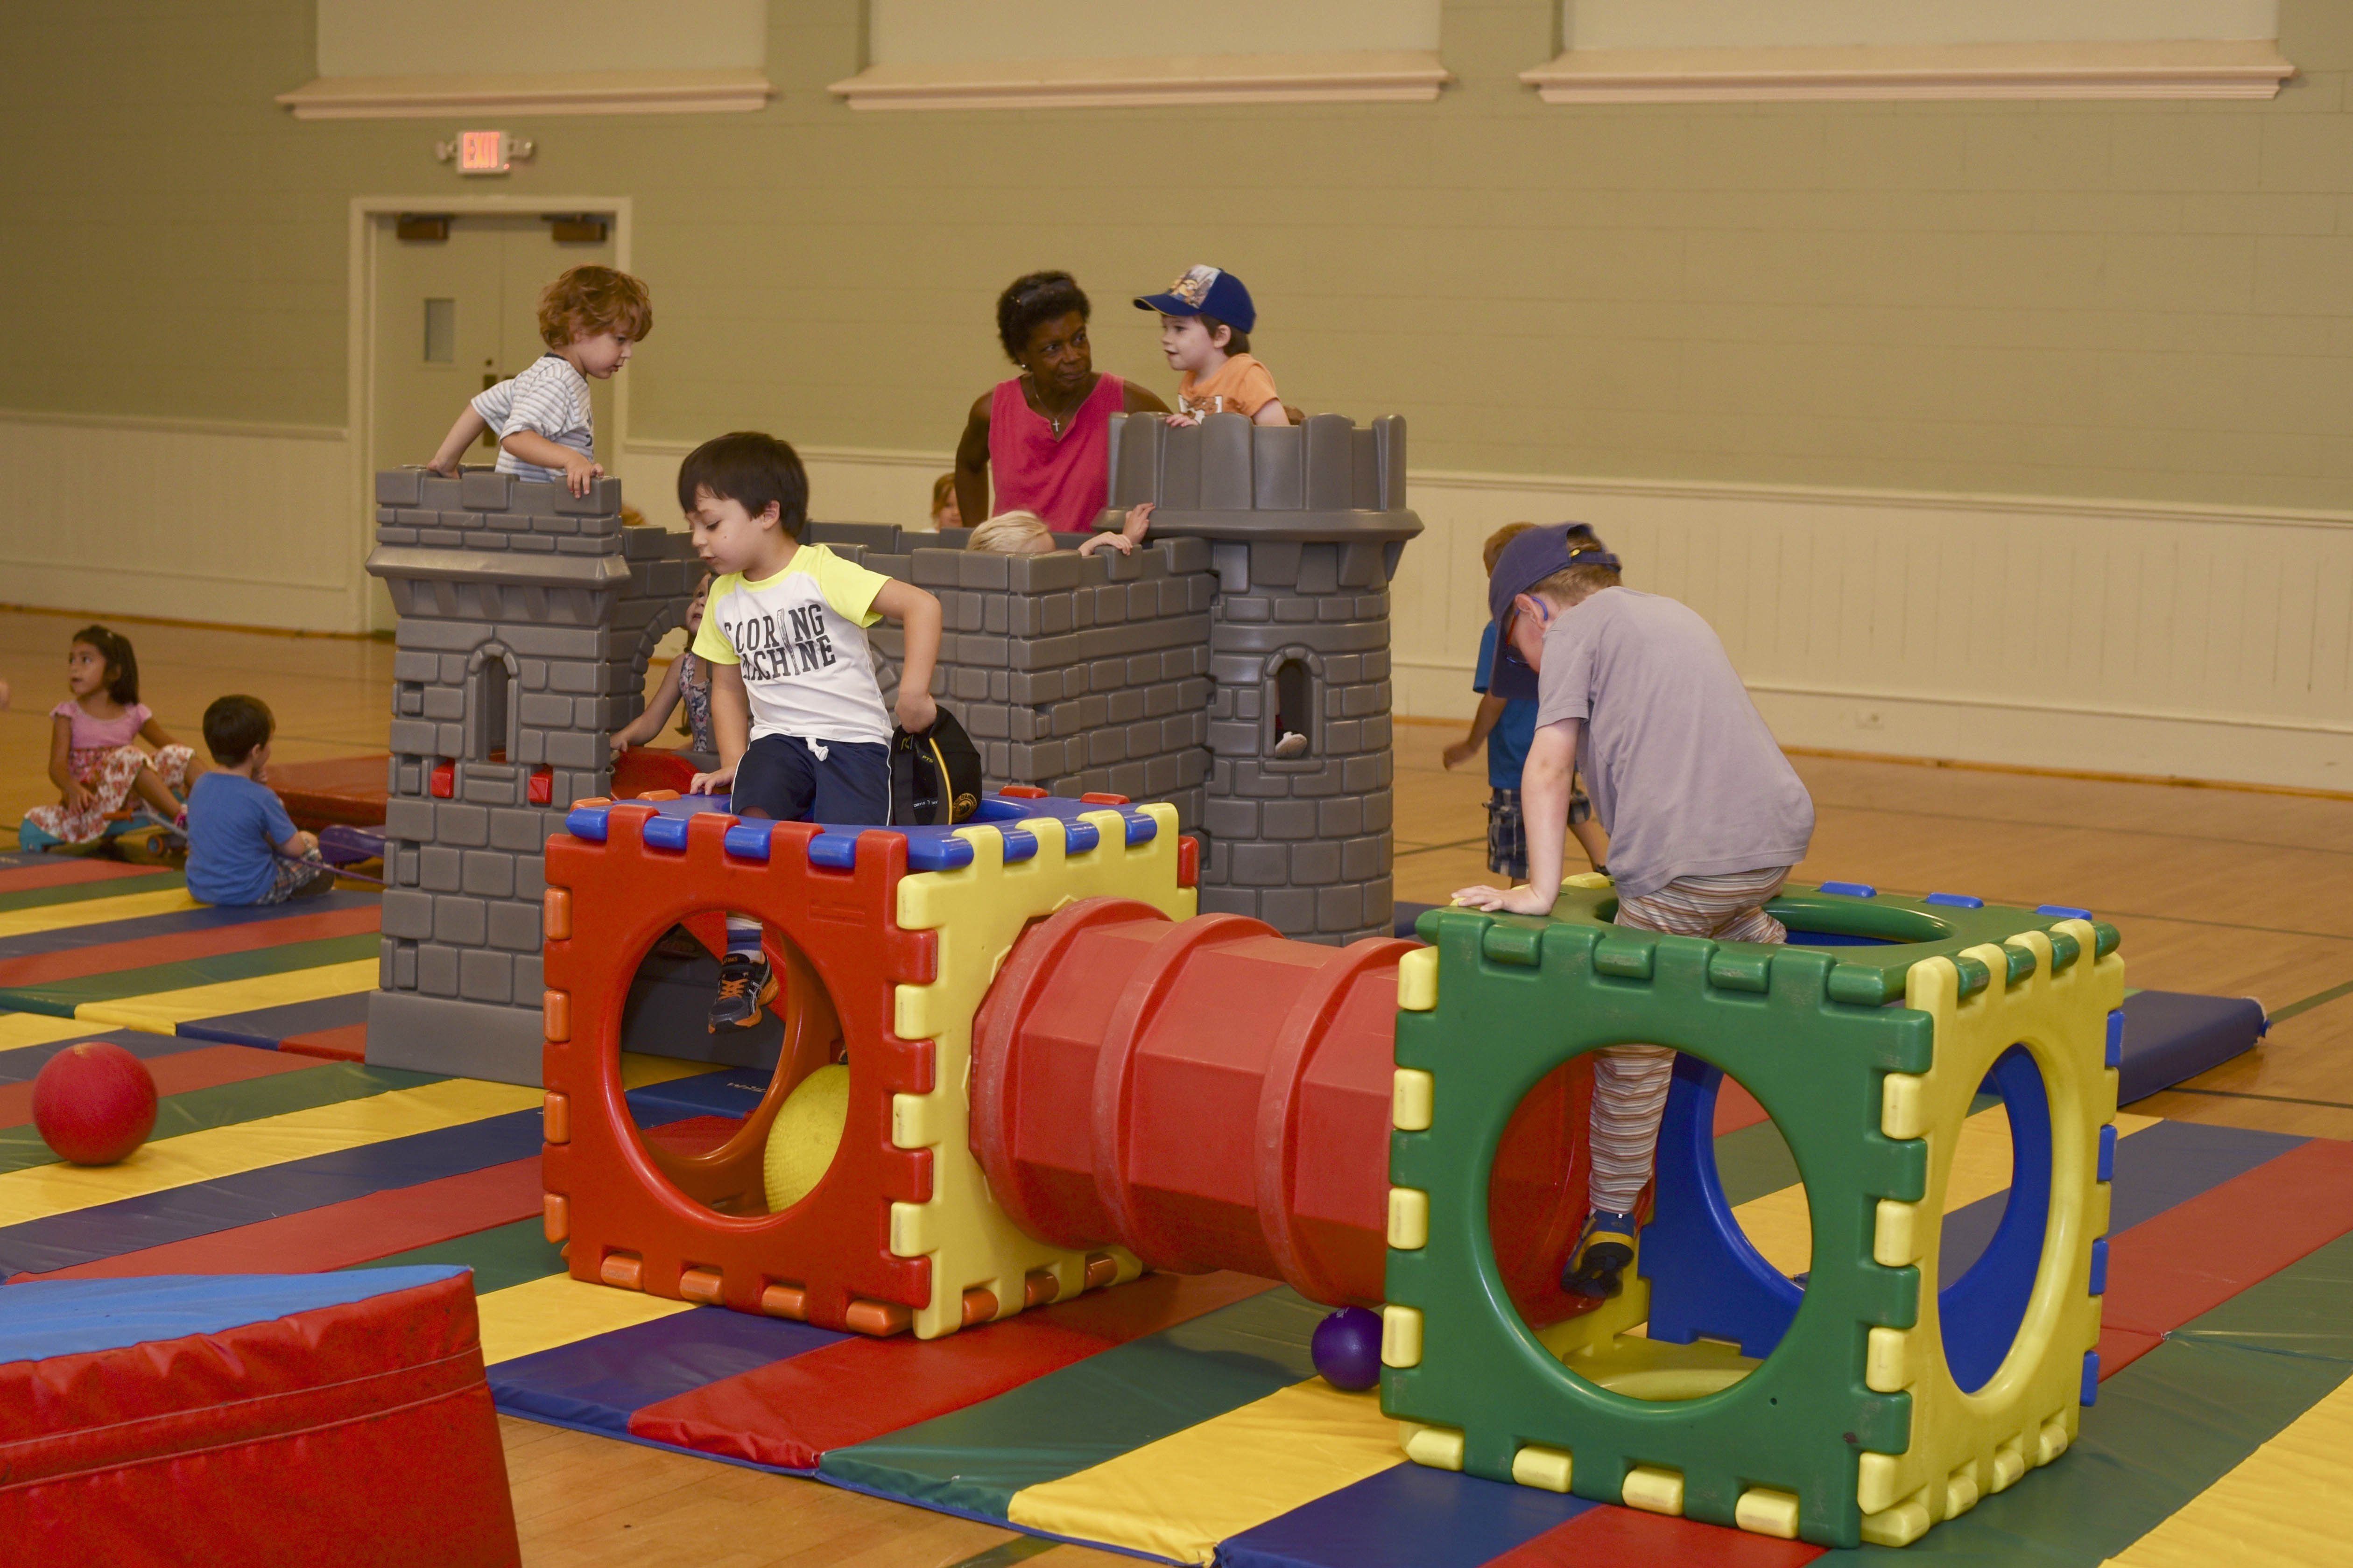 Children climbing on castle structure in SLC Gym